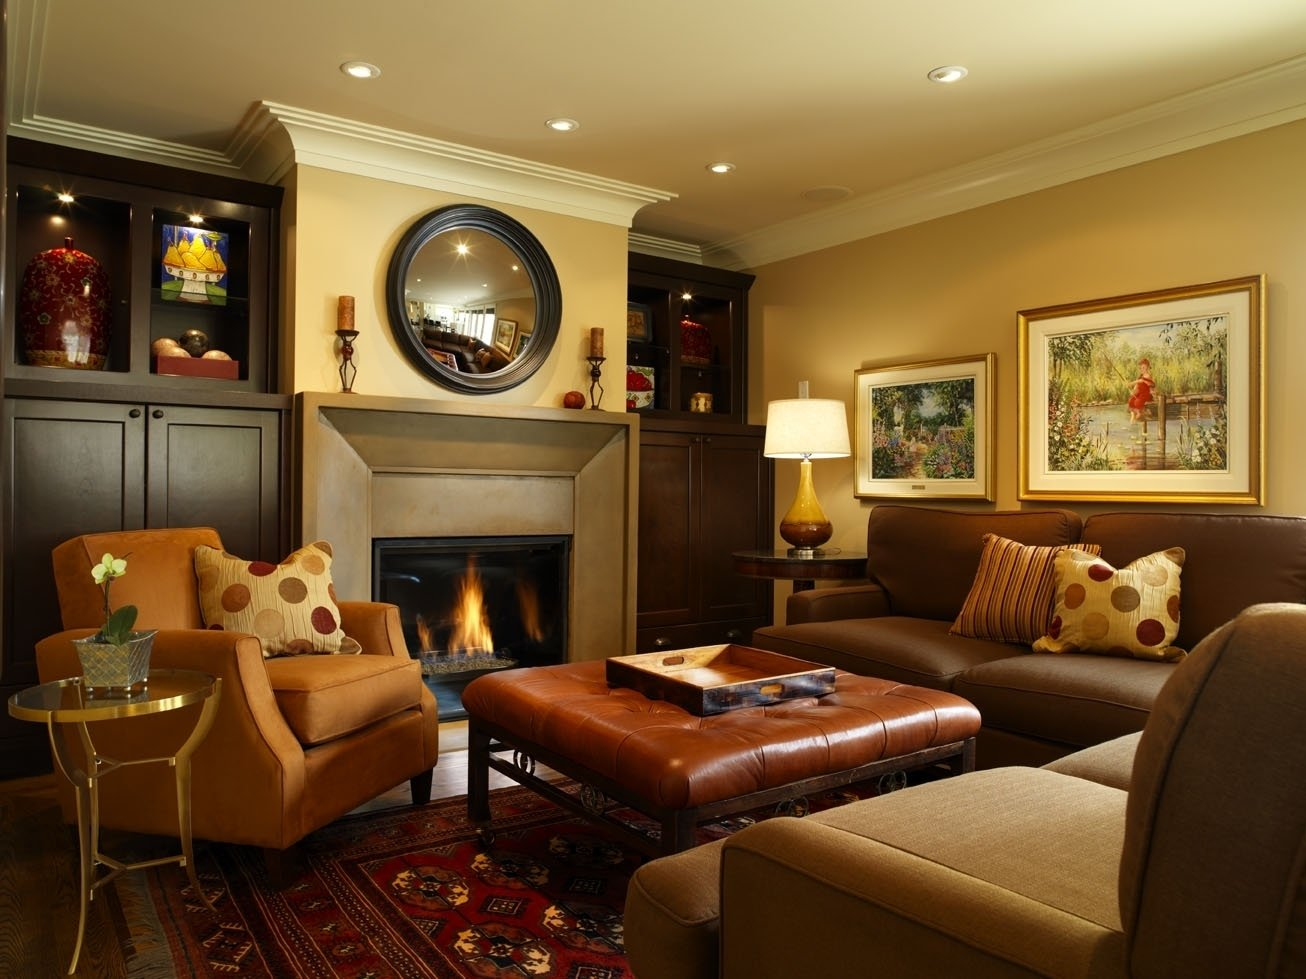 10 Lovable Decorating Ideas For Family Room living room an ashtonising family room decorating ideas with 2021